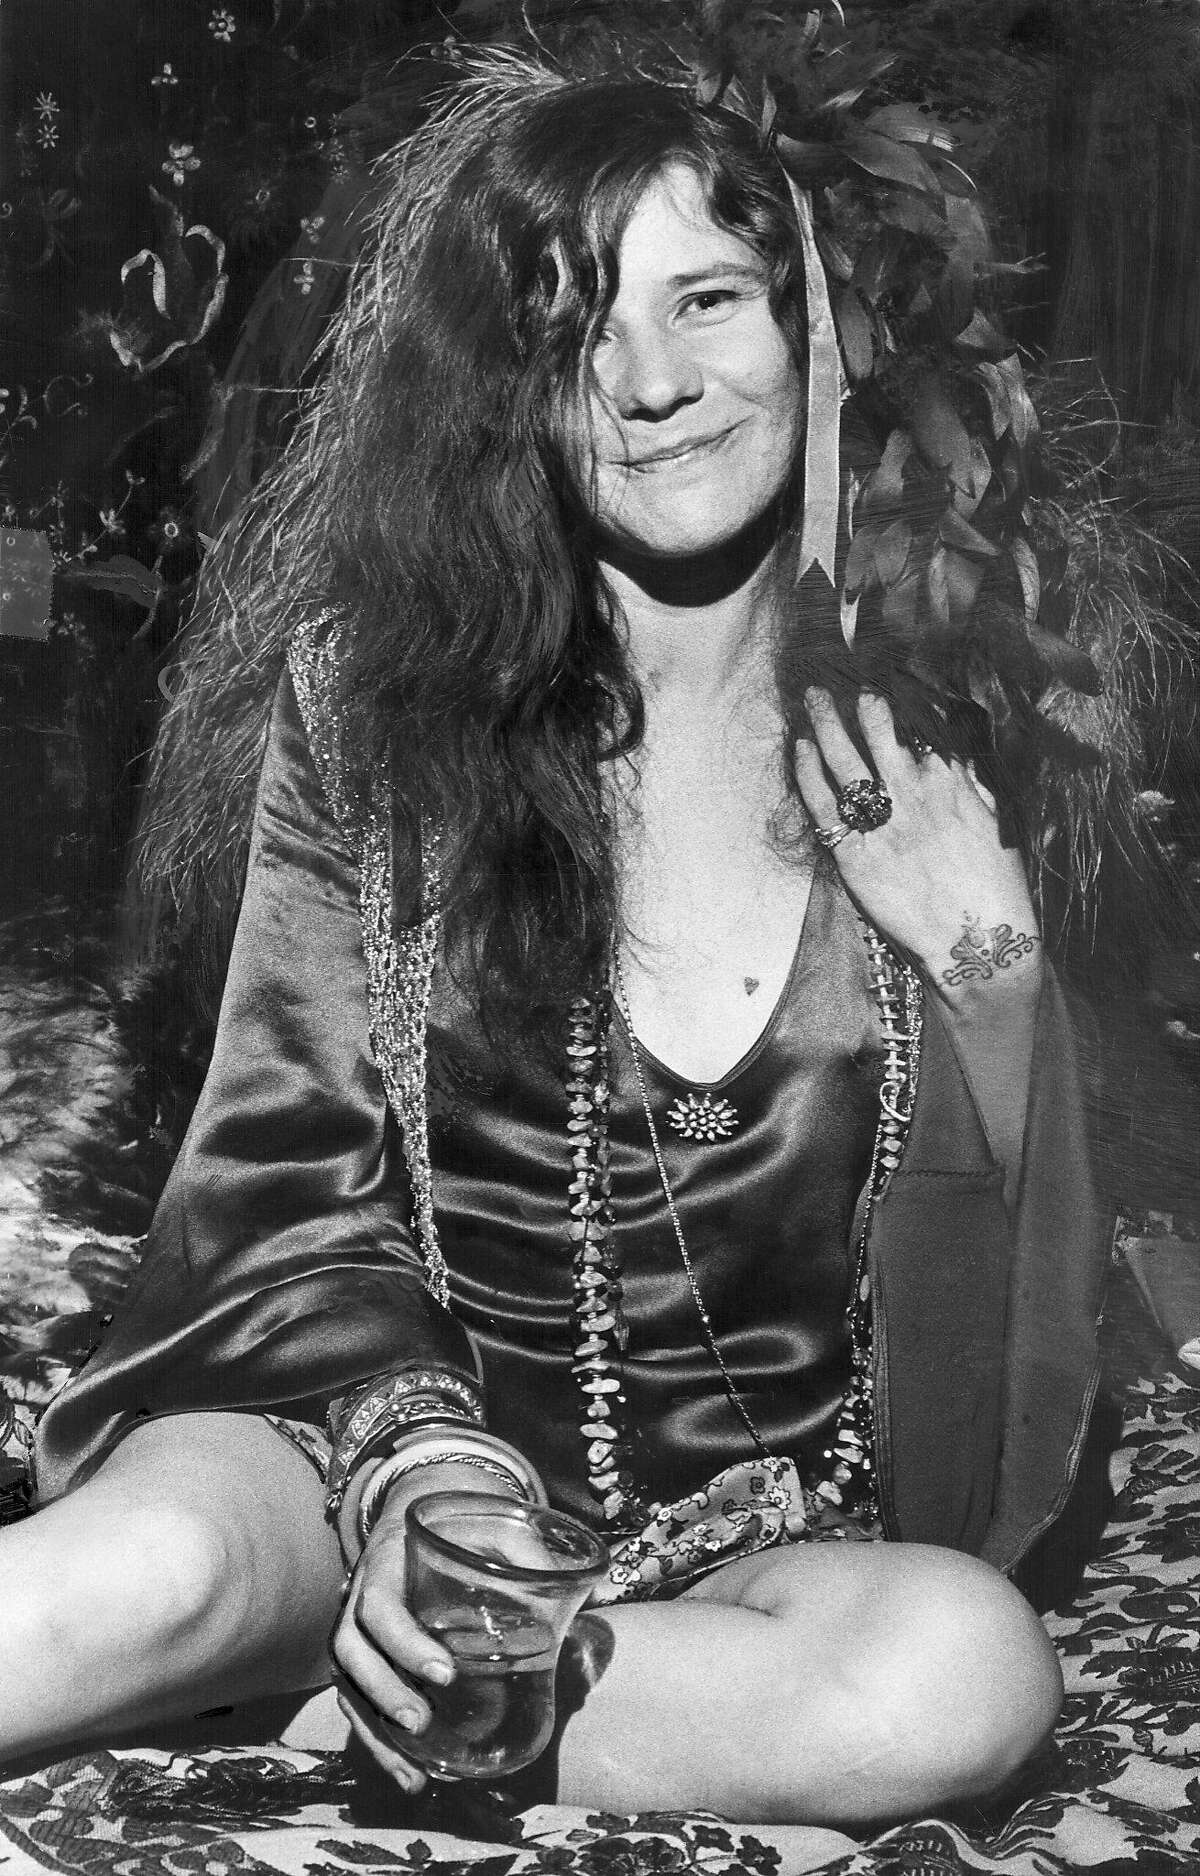 Janis Joplin was found dead by her manager in 1970 after overdosing on heroin. She was 27.